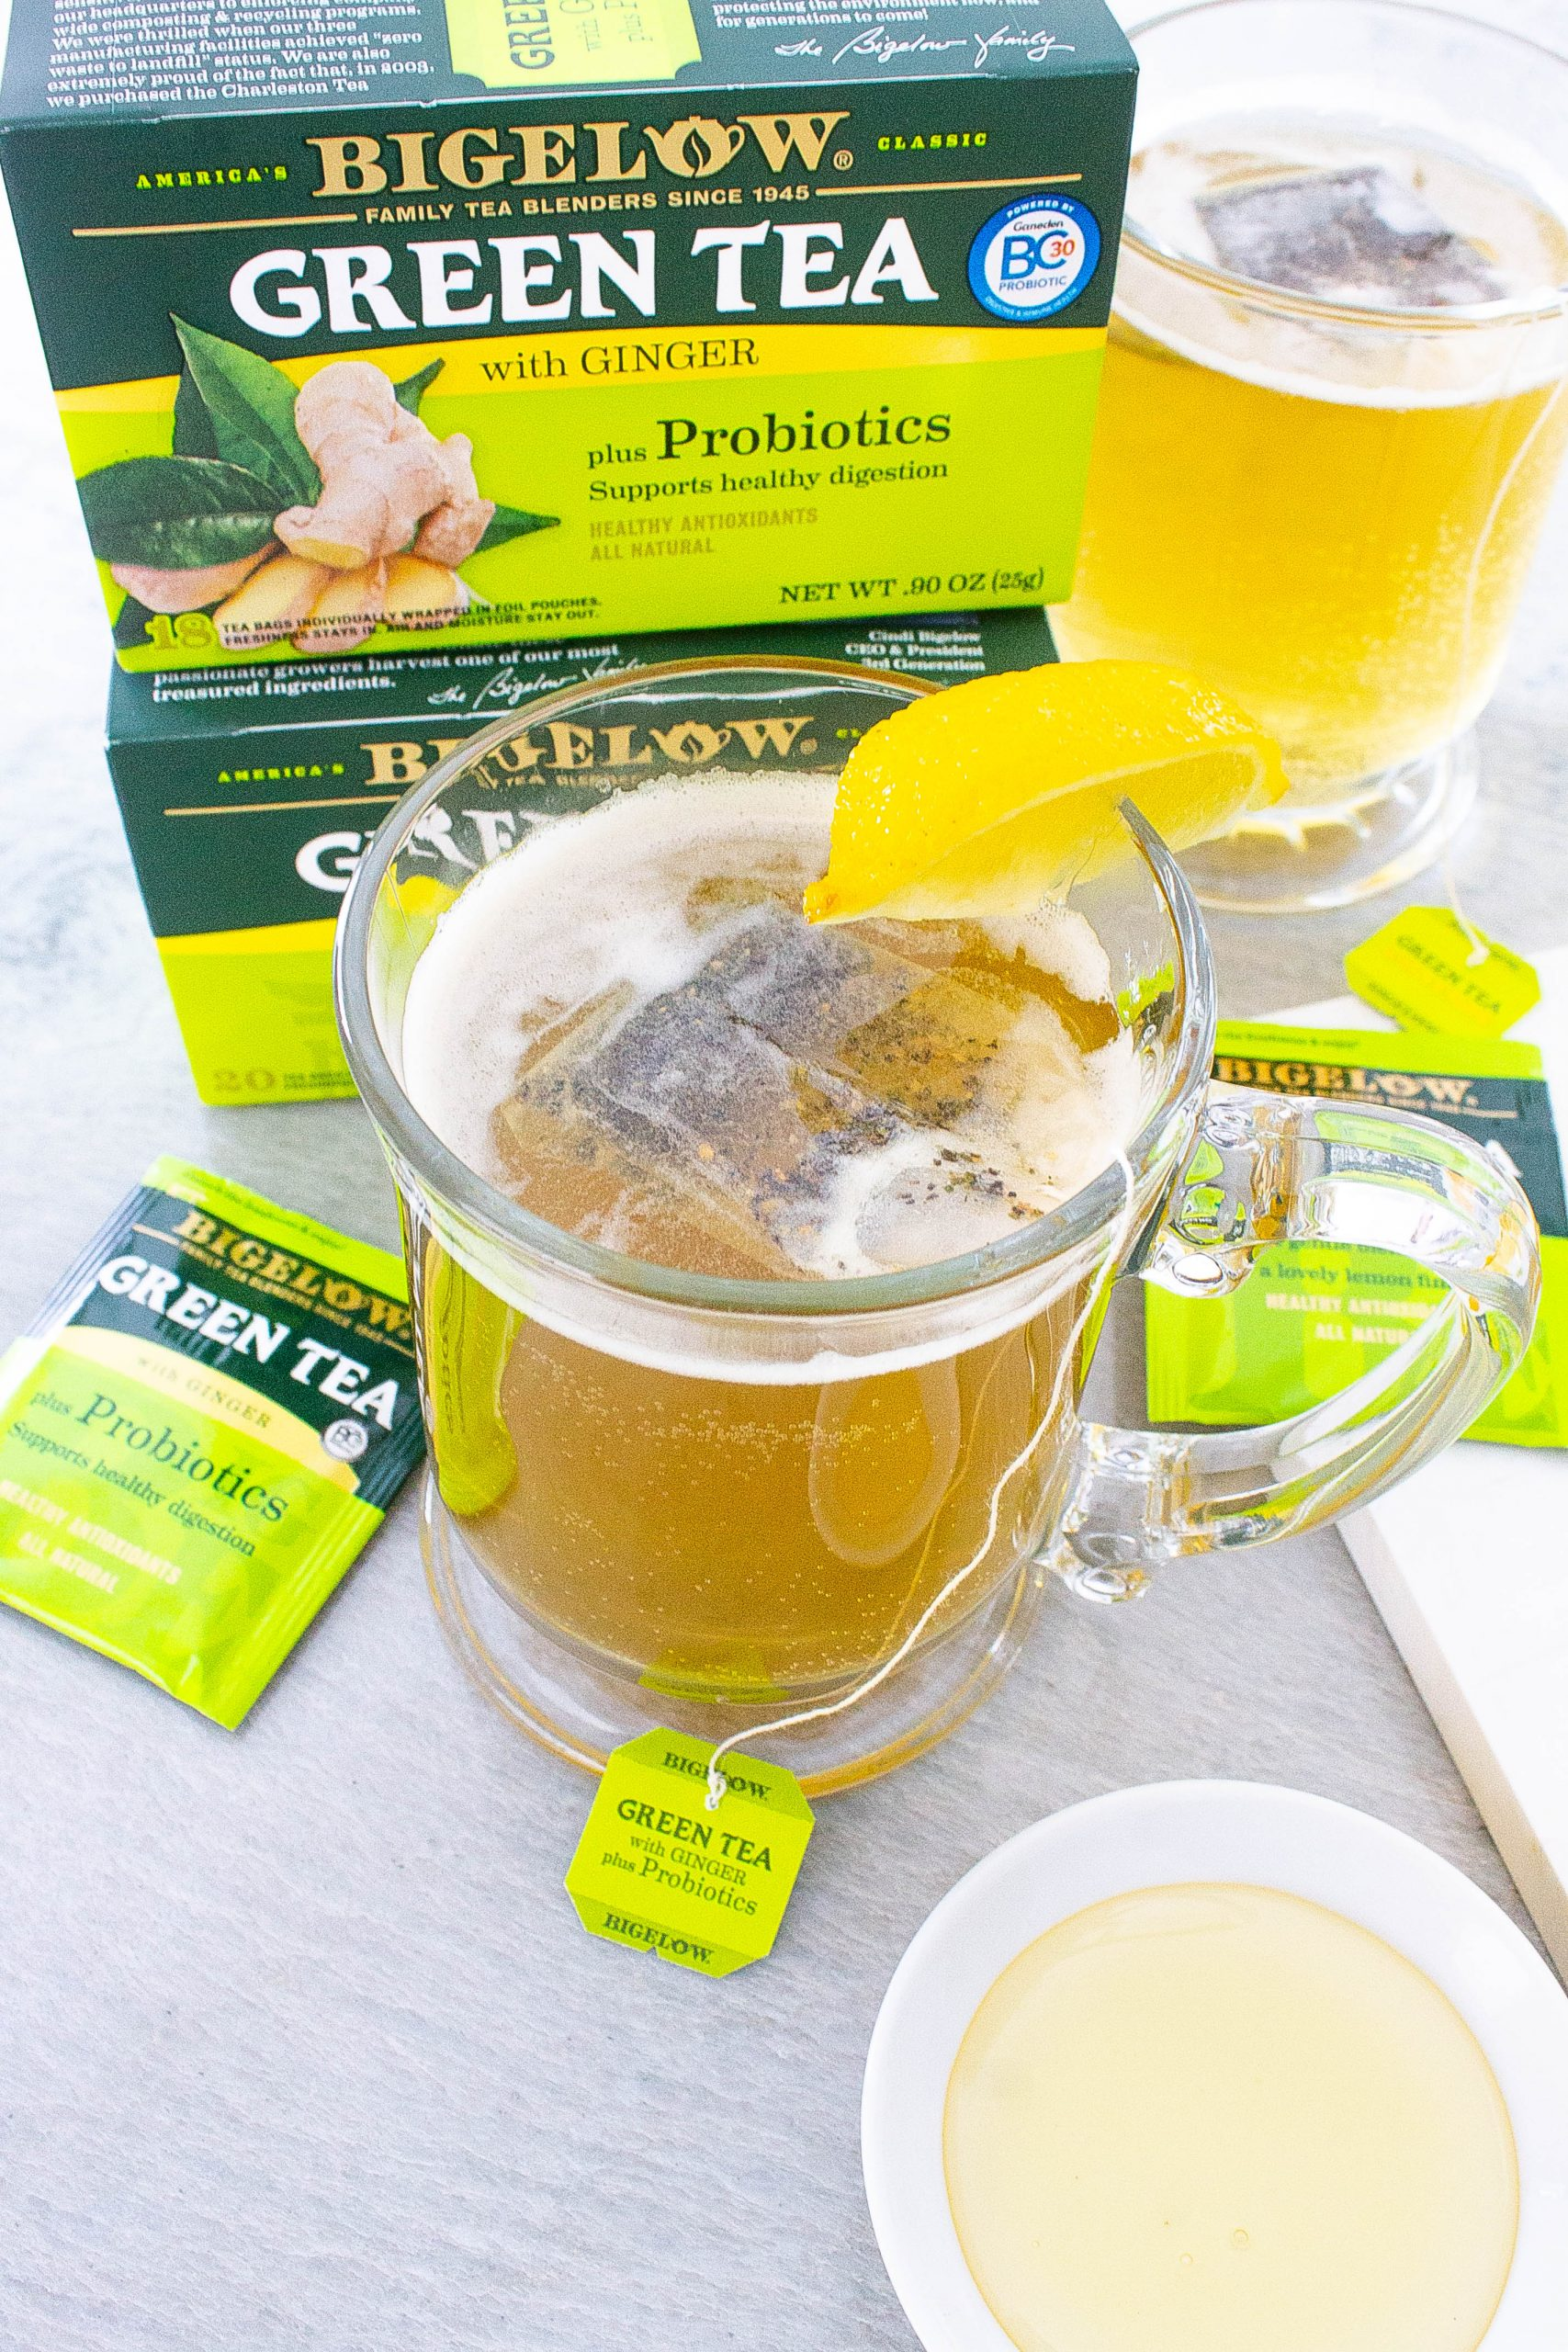 Bigelow tea and lemon